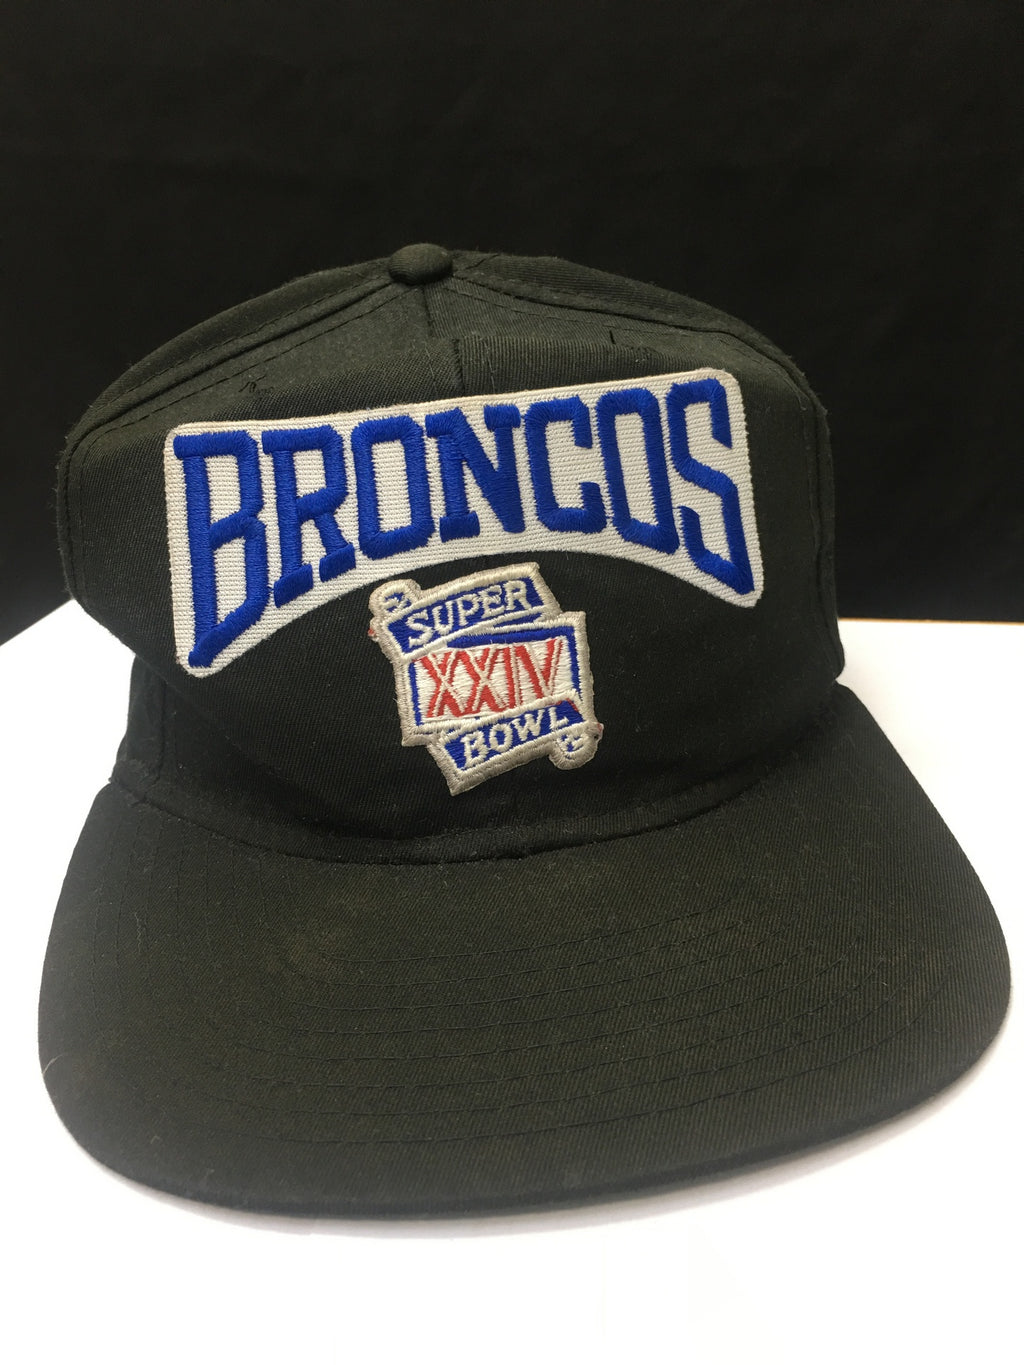 Vintage Broncos XXIV Superbowl New Era Adjustable Cap